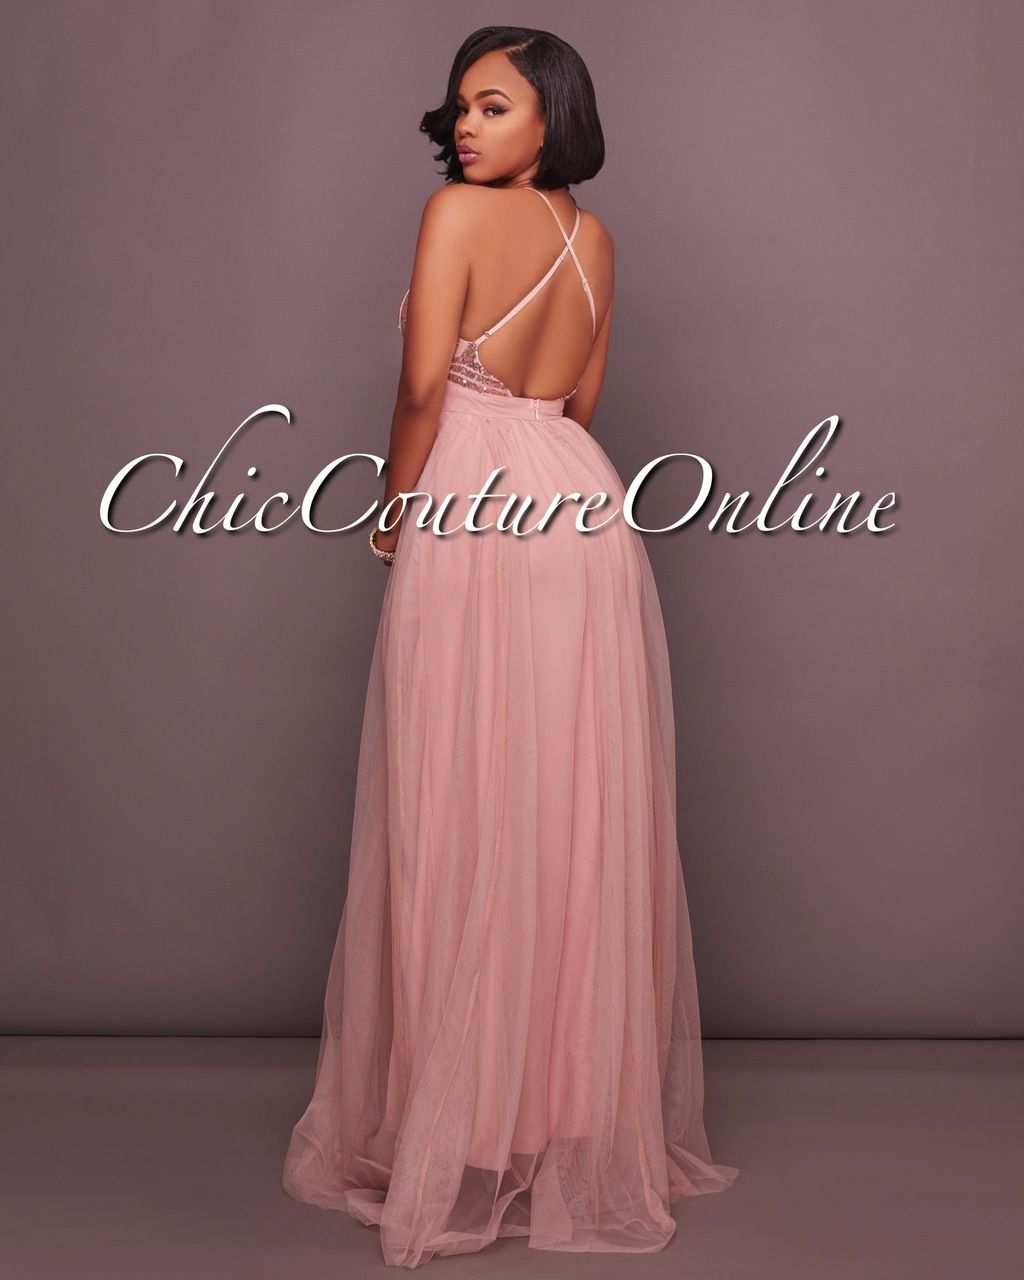 Madrina Dusty Blush Tulle Rose Gold Sequins Maxi Dress | Sequin maxi ...